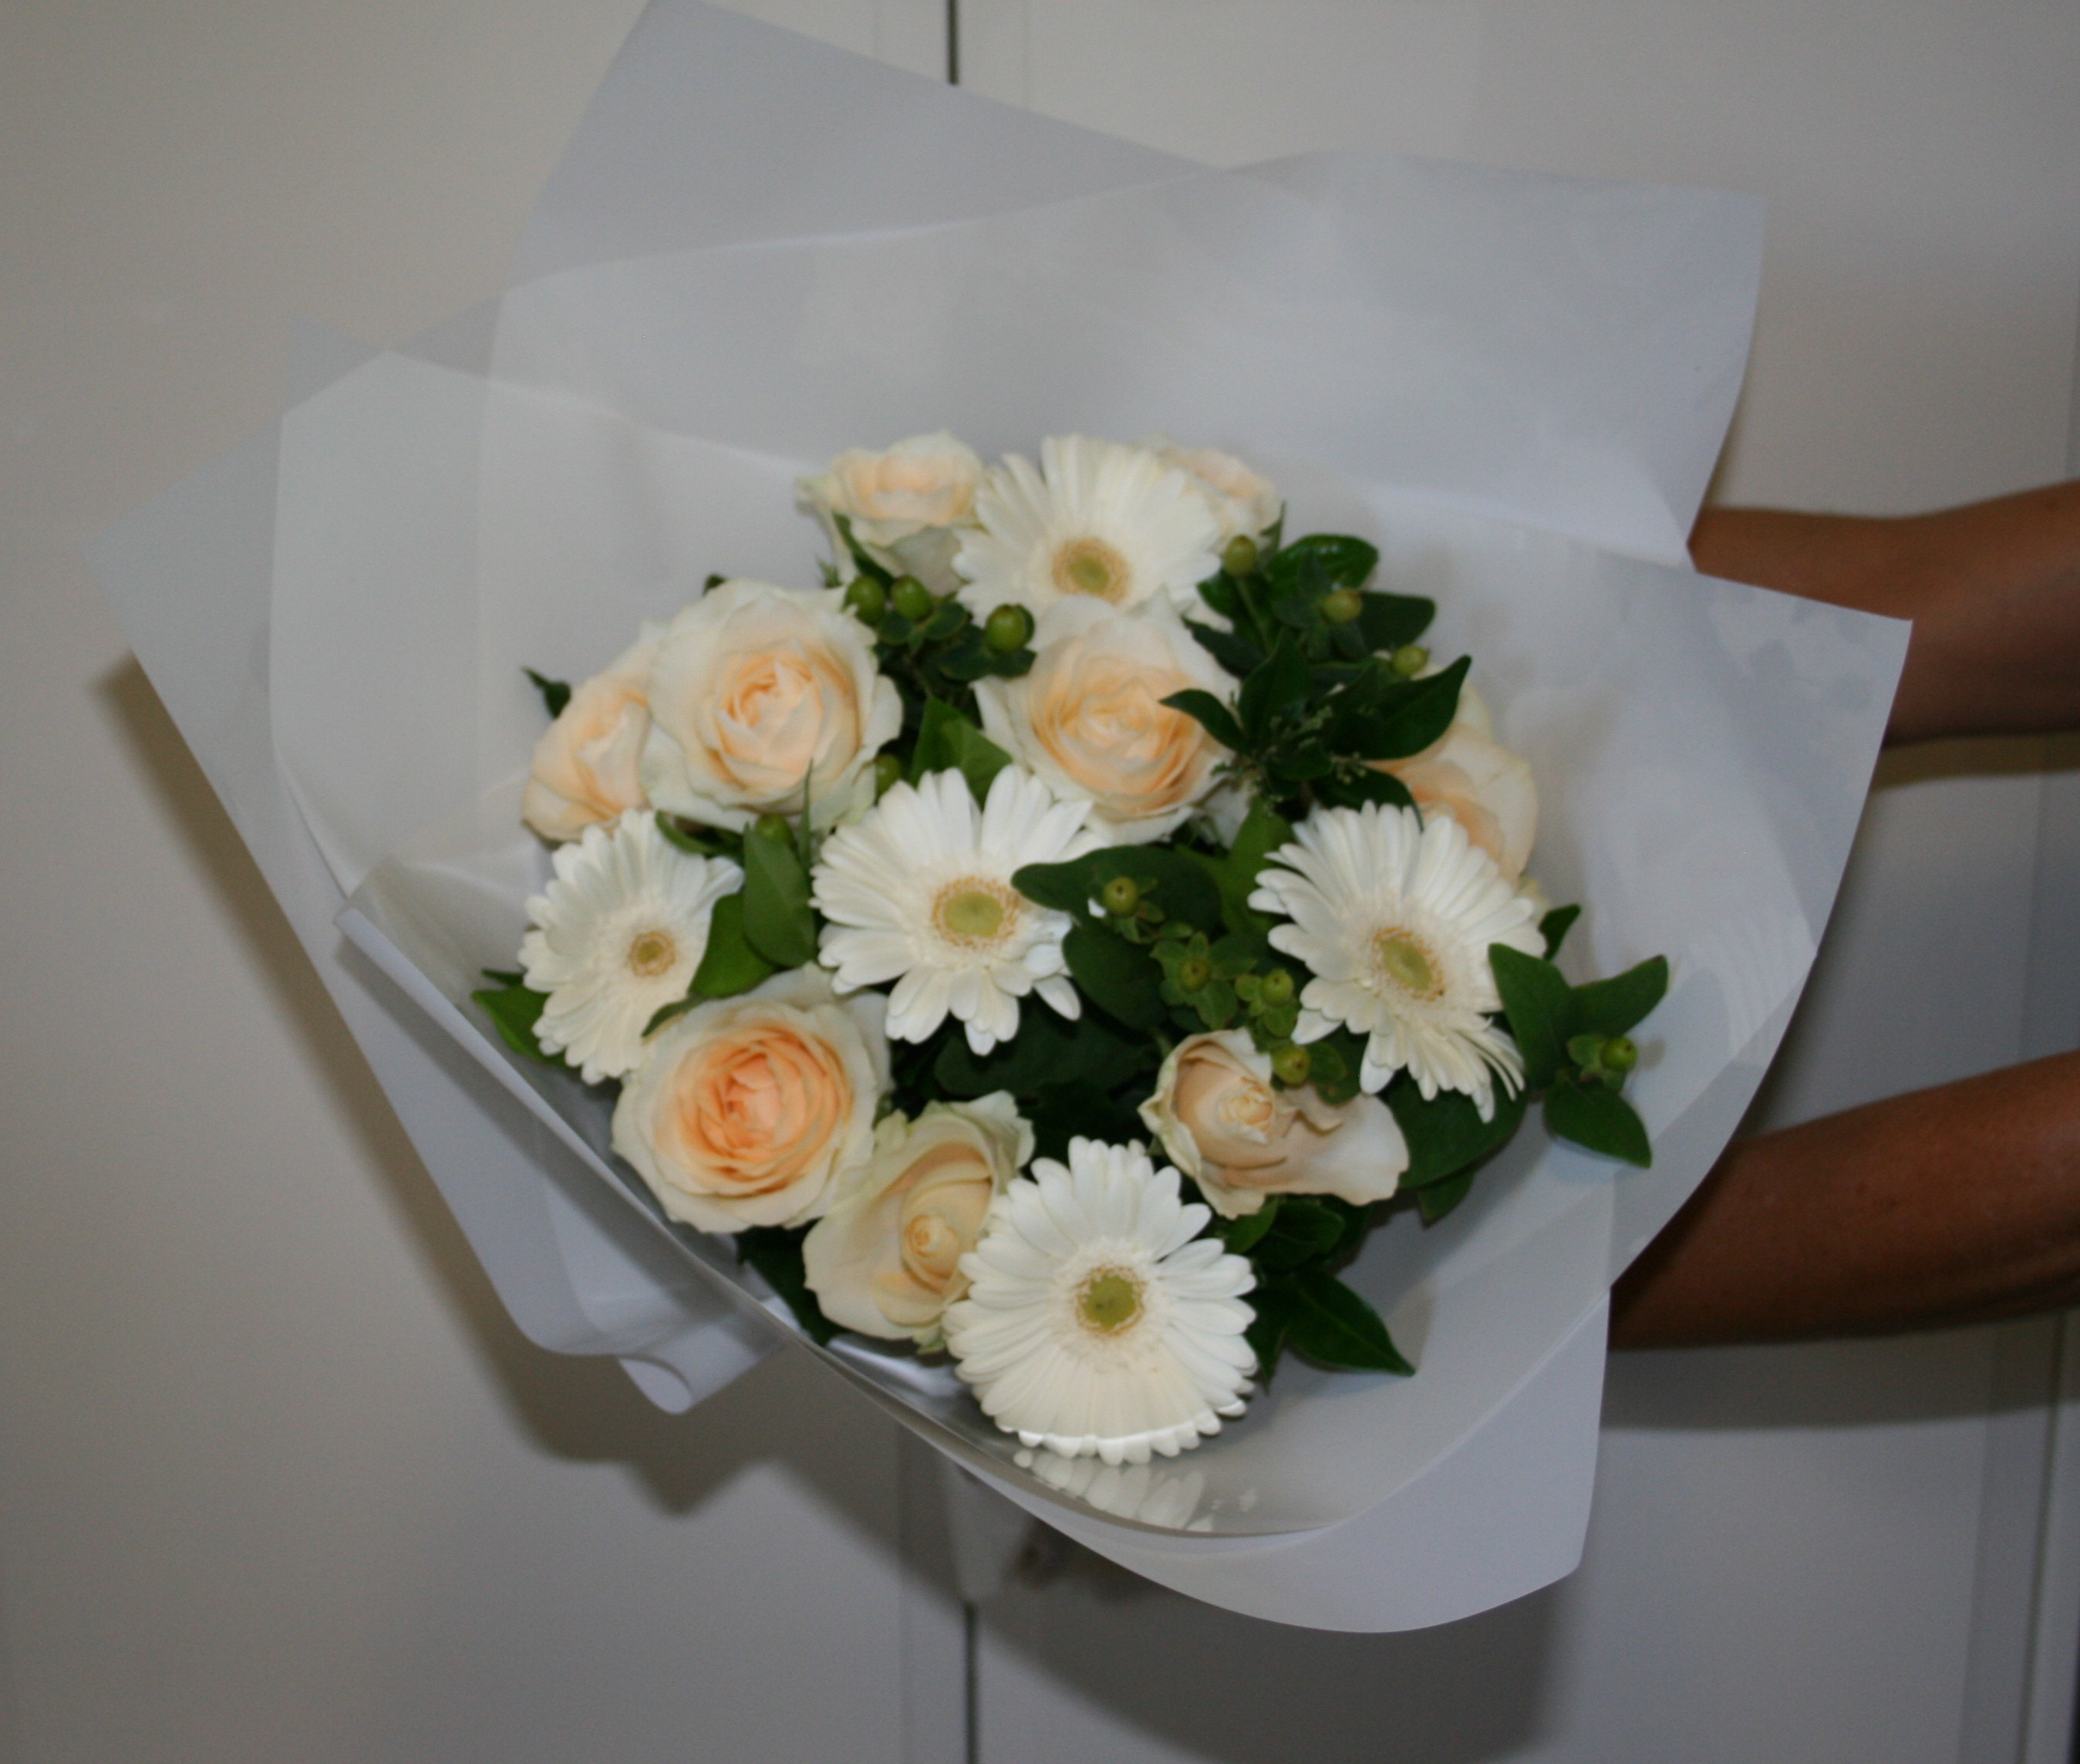 Pam Hand tied posy cropped